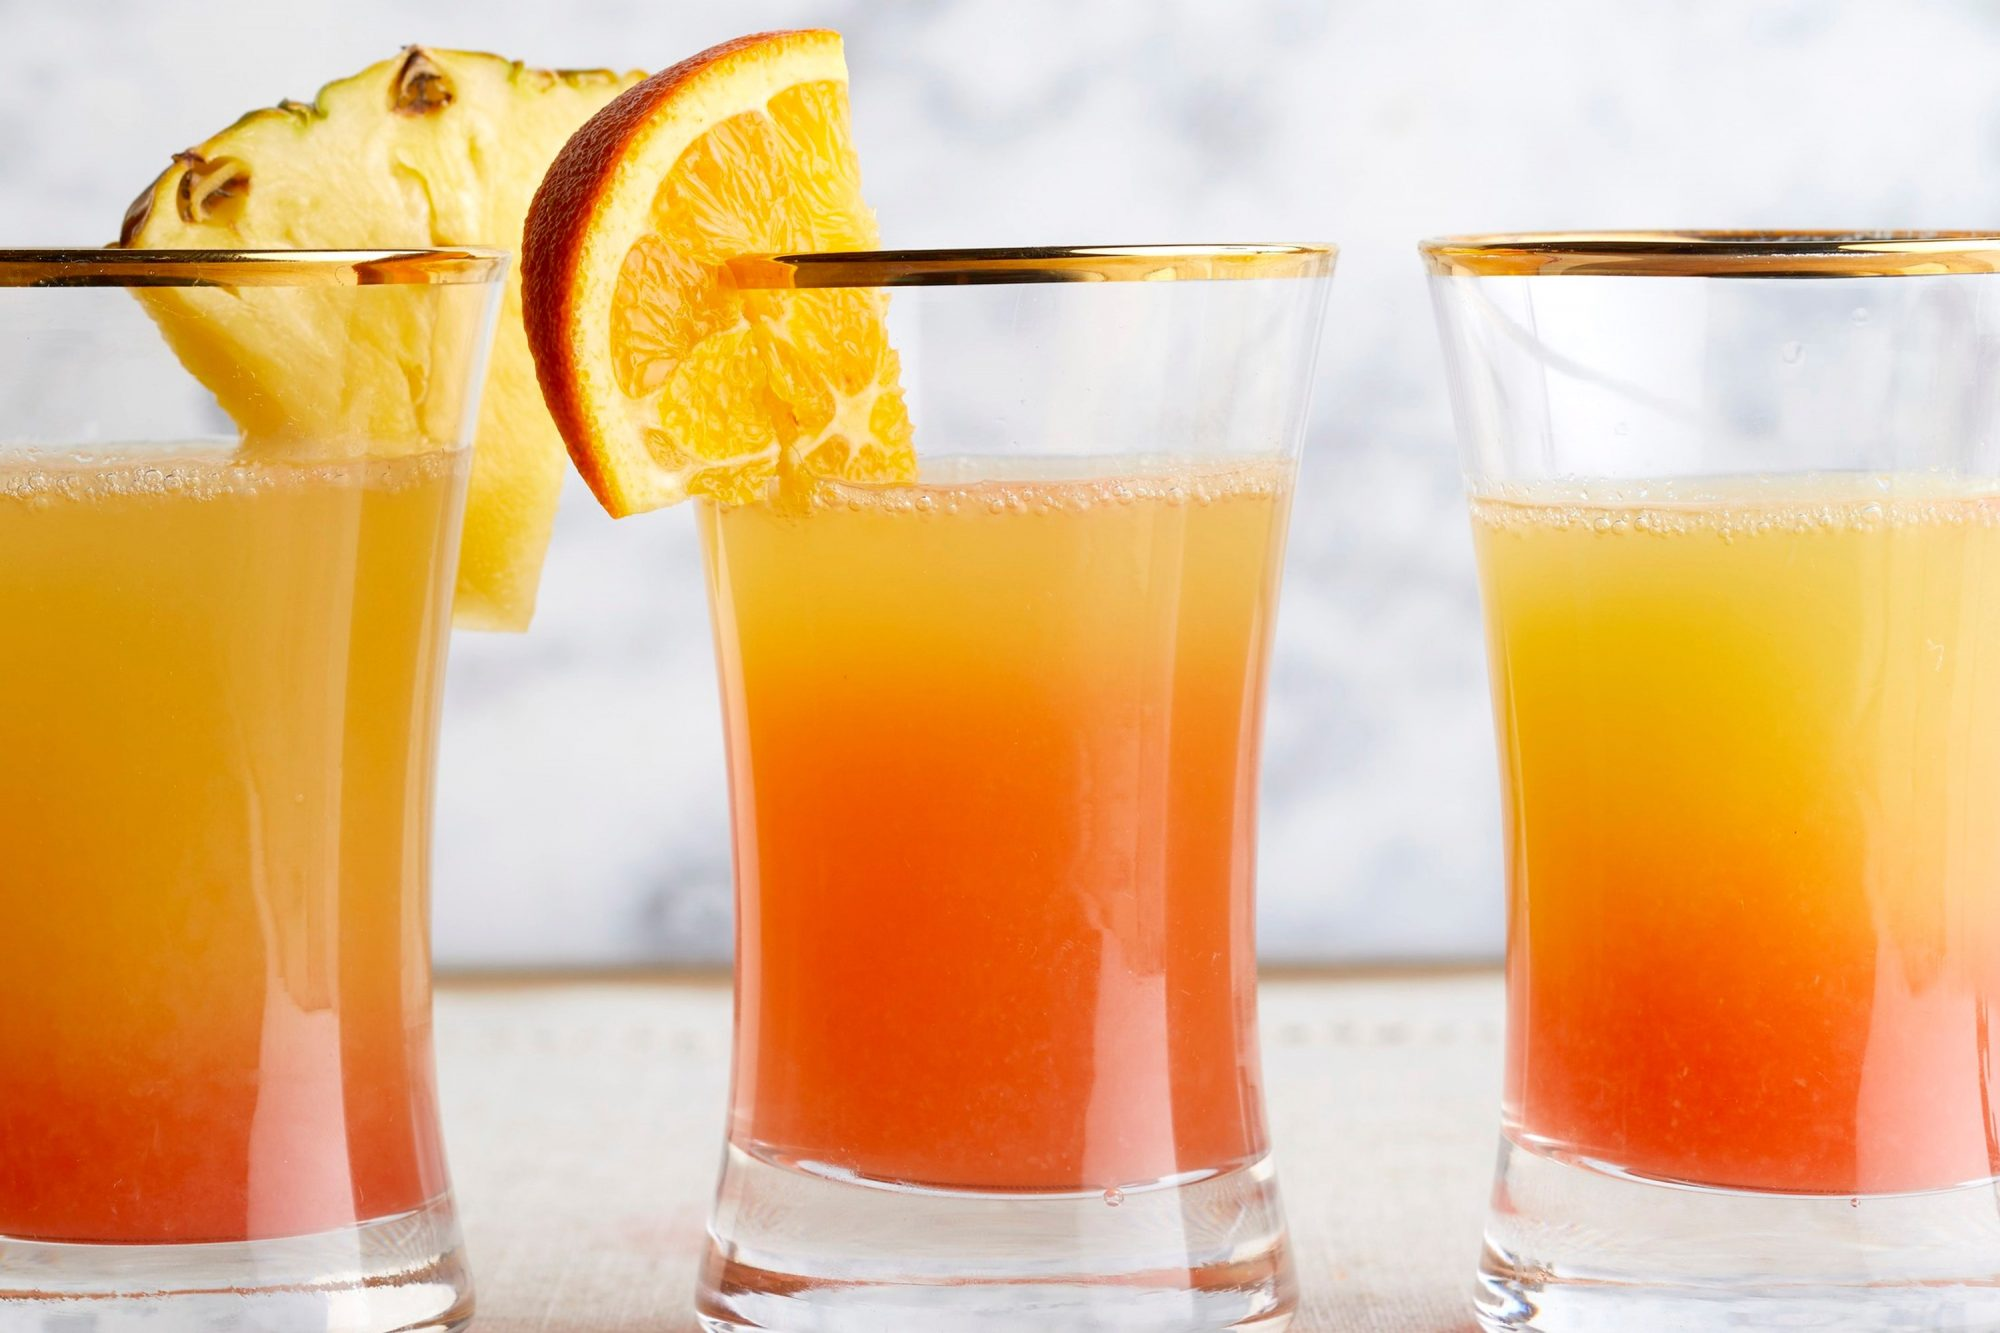 mimosas with orange and pineapple garnishes in short glasses